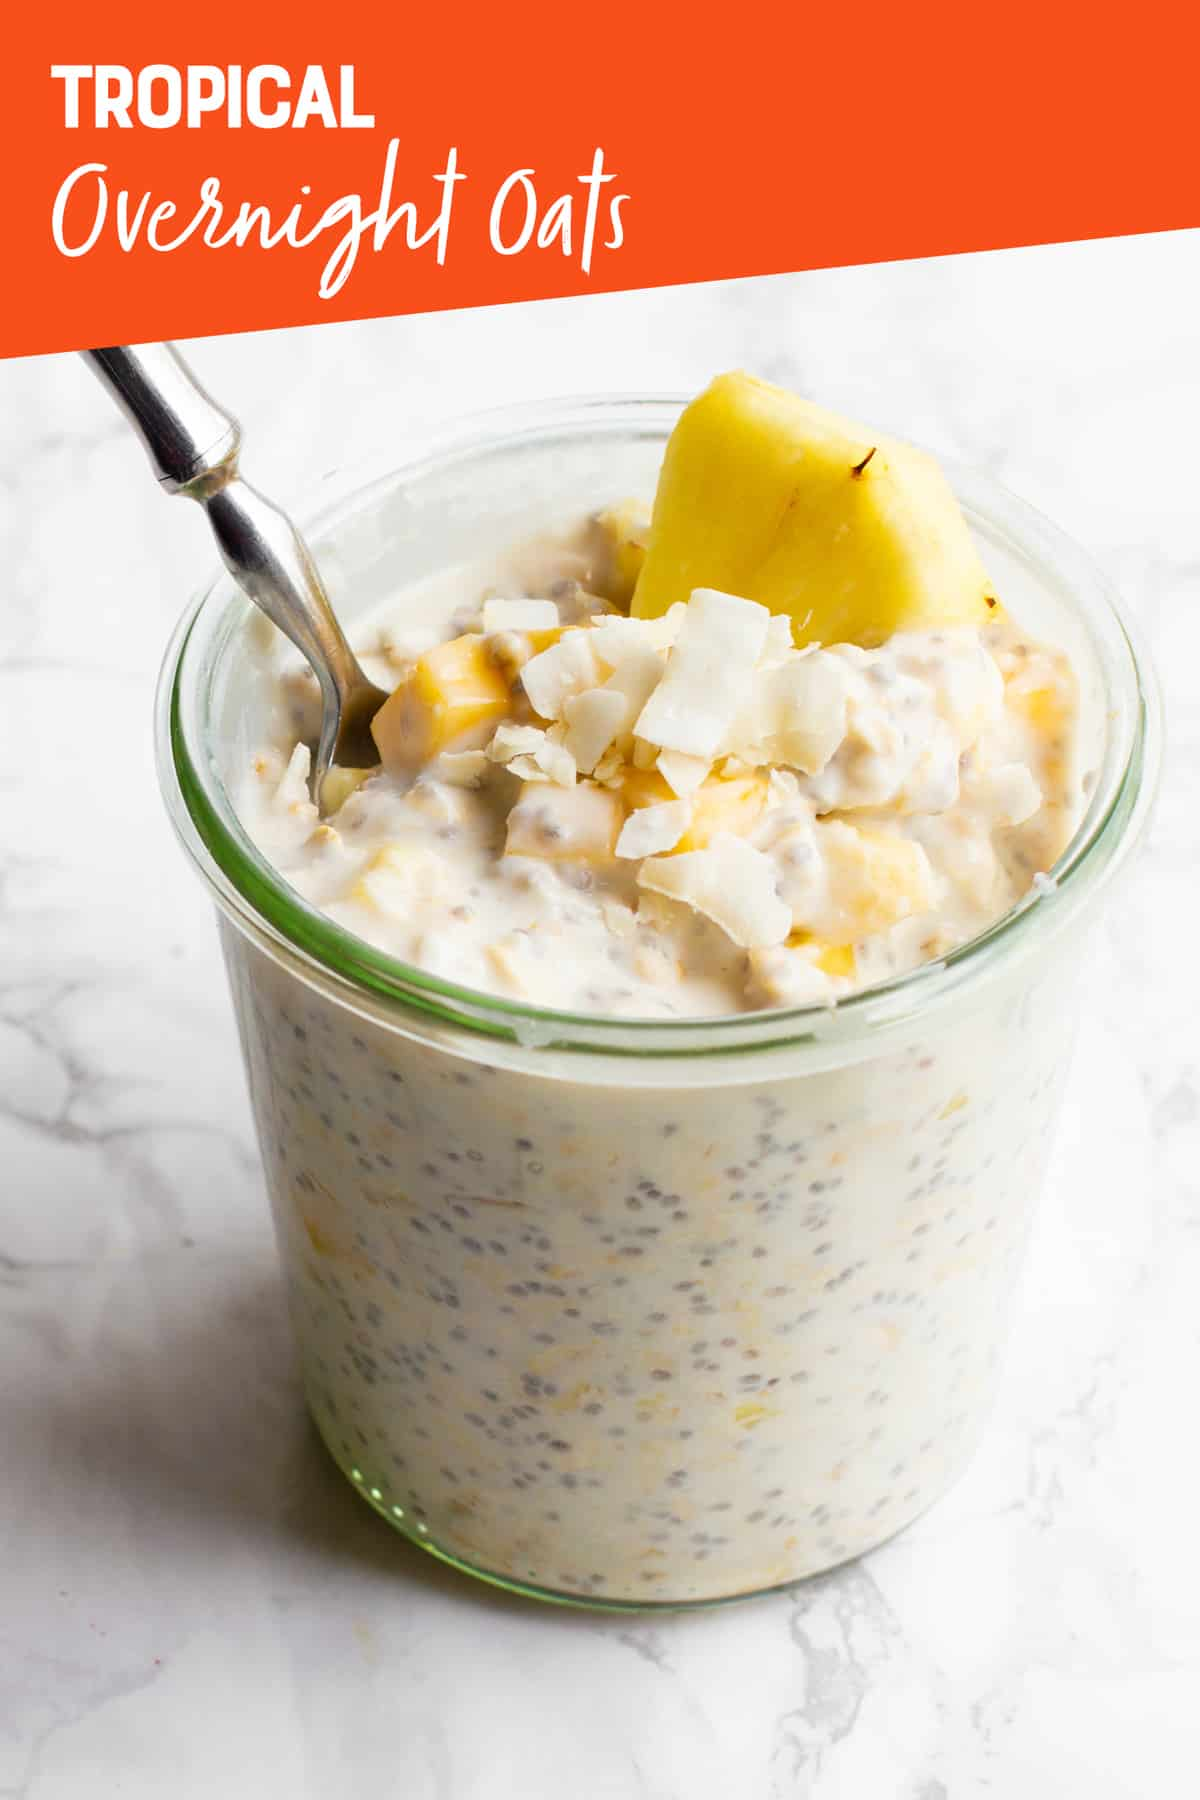 """A clear glass jar filled with Tropical Fruit Overnight Oats, with a spoon sticking out. A text overlay reads """"Tropical Overnight Oats."""""""